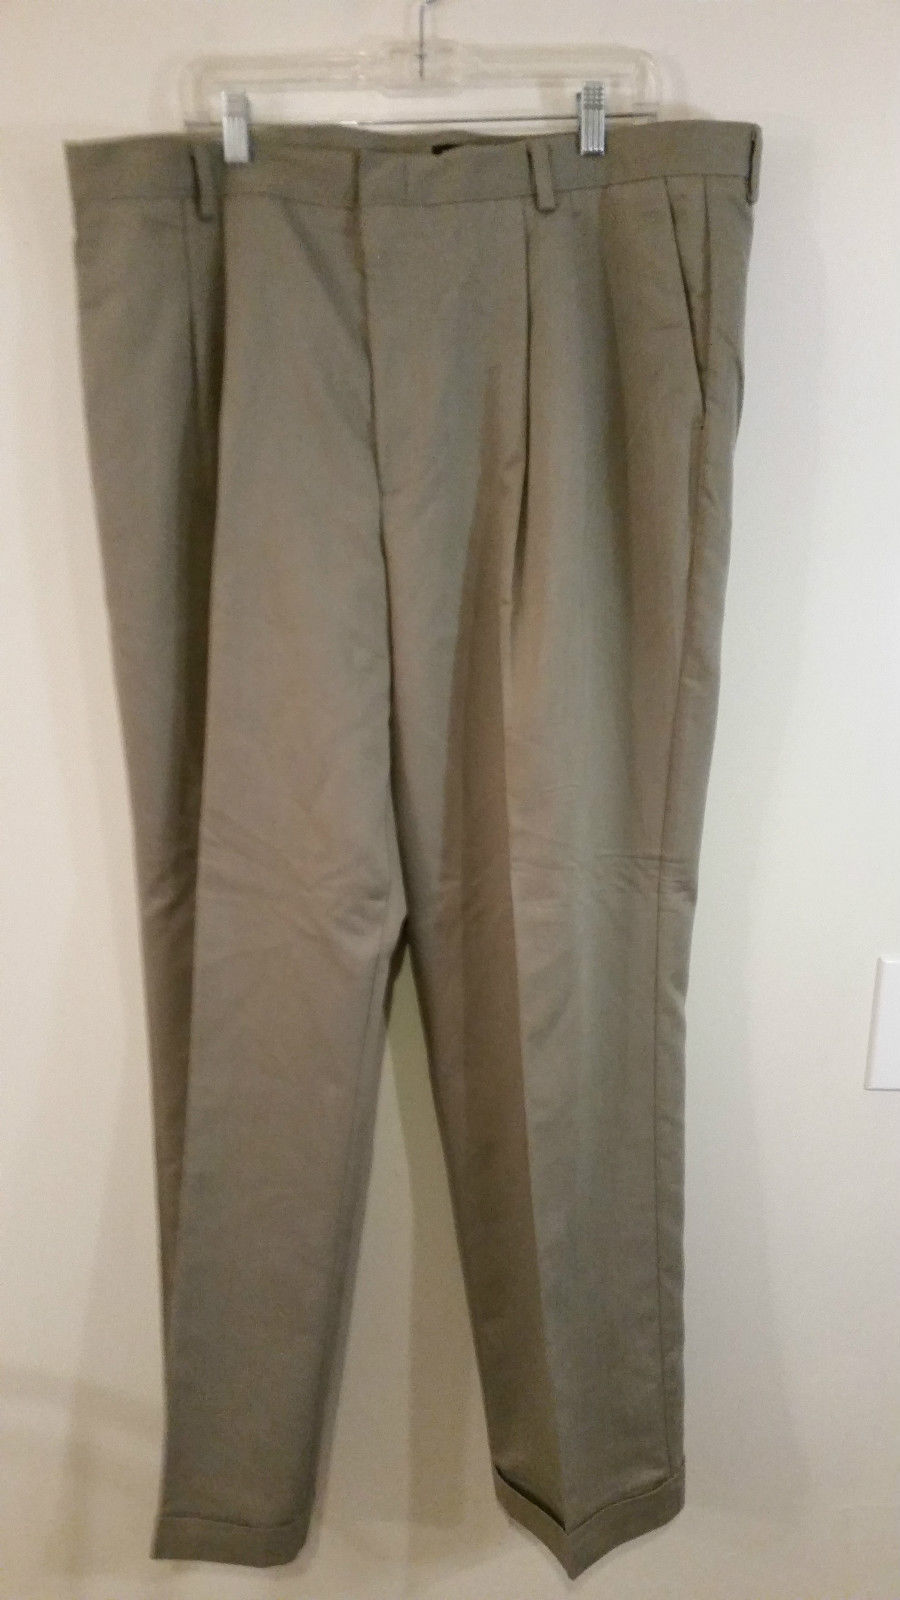 Light Gray Pleated Front Dress Pants by Dockers Size W42 L 32